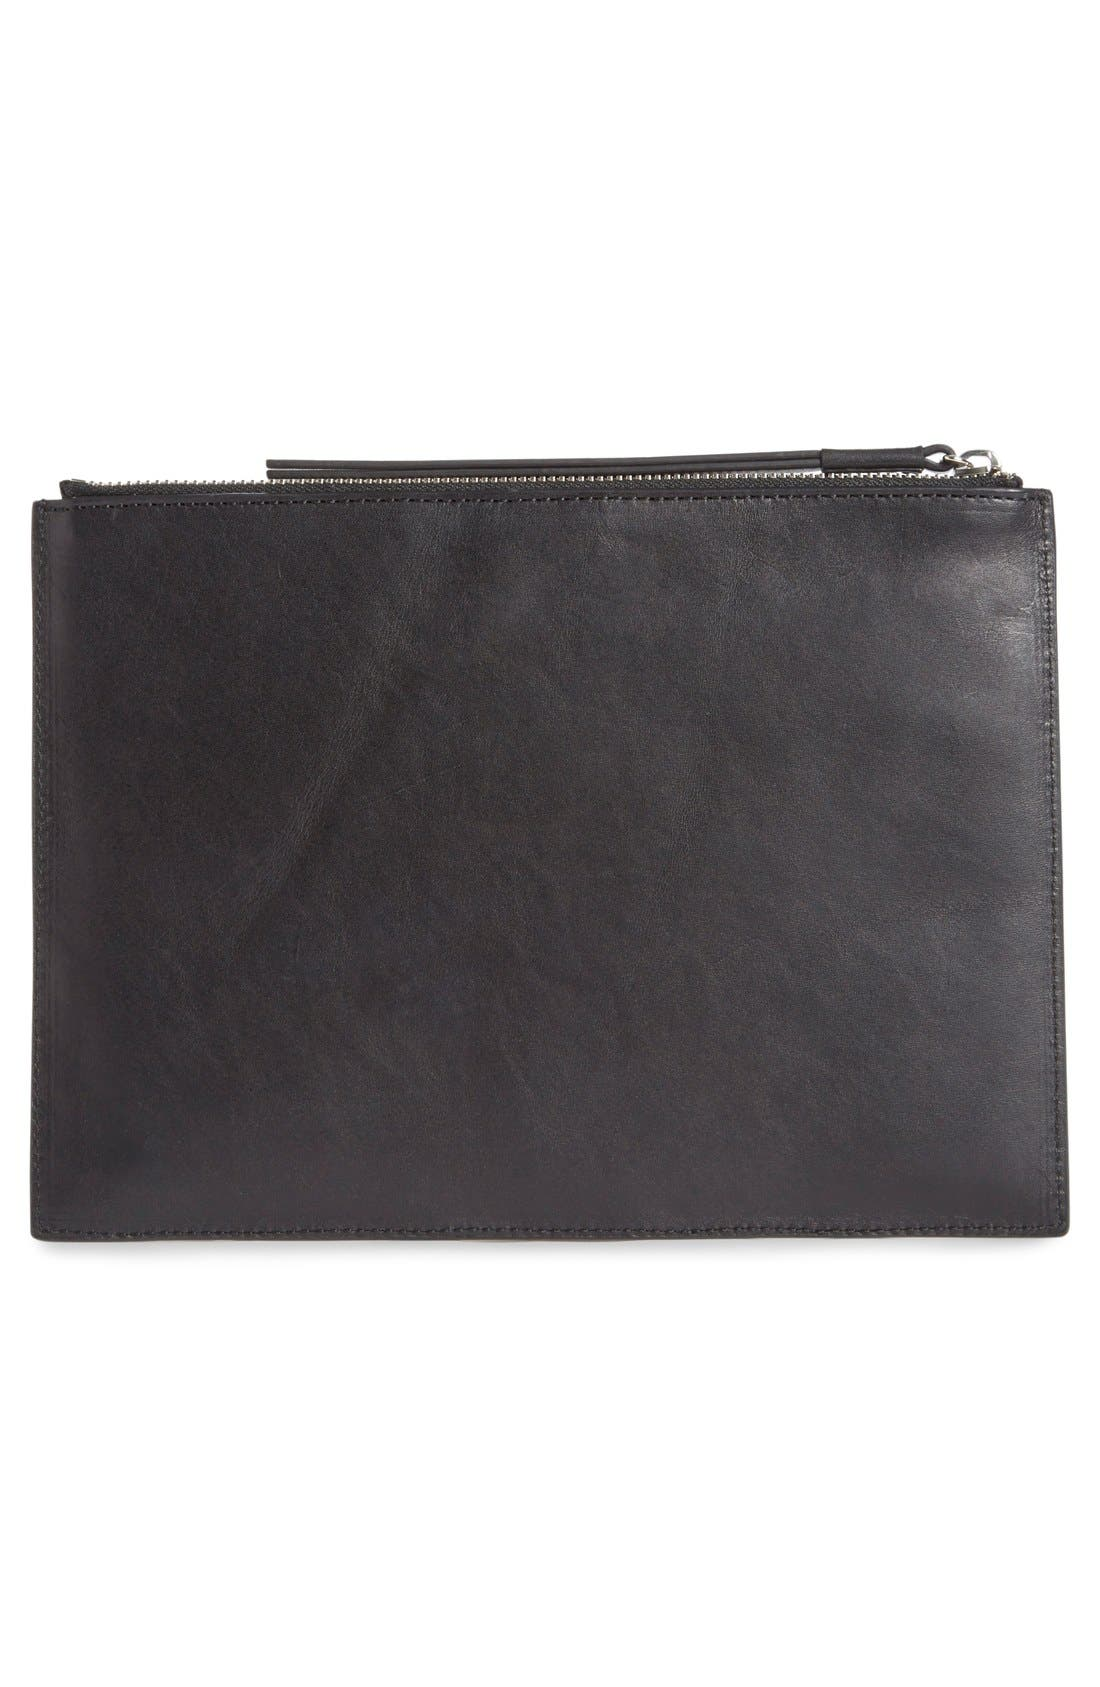 Flat Leather Pouch,                             Alternate thumbnail 2, color,                             001